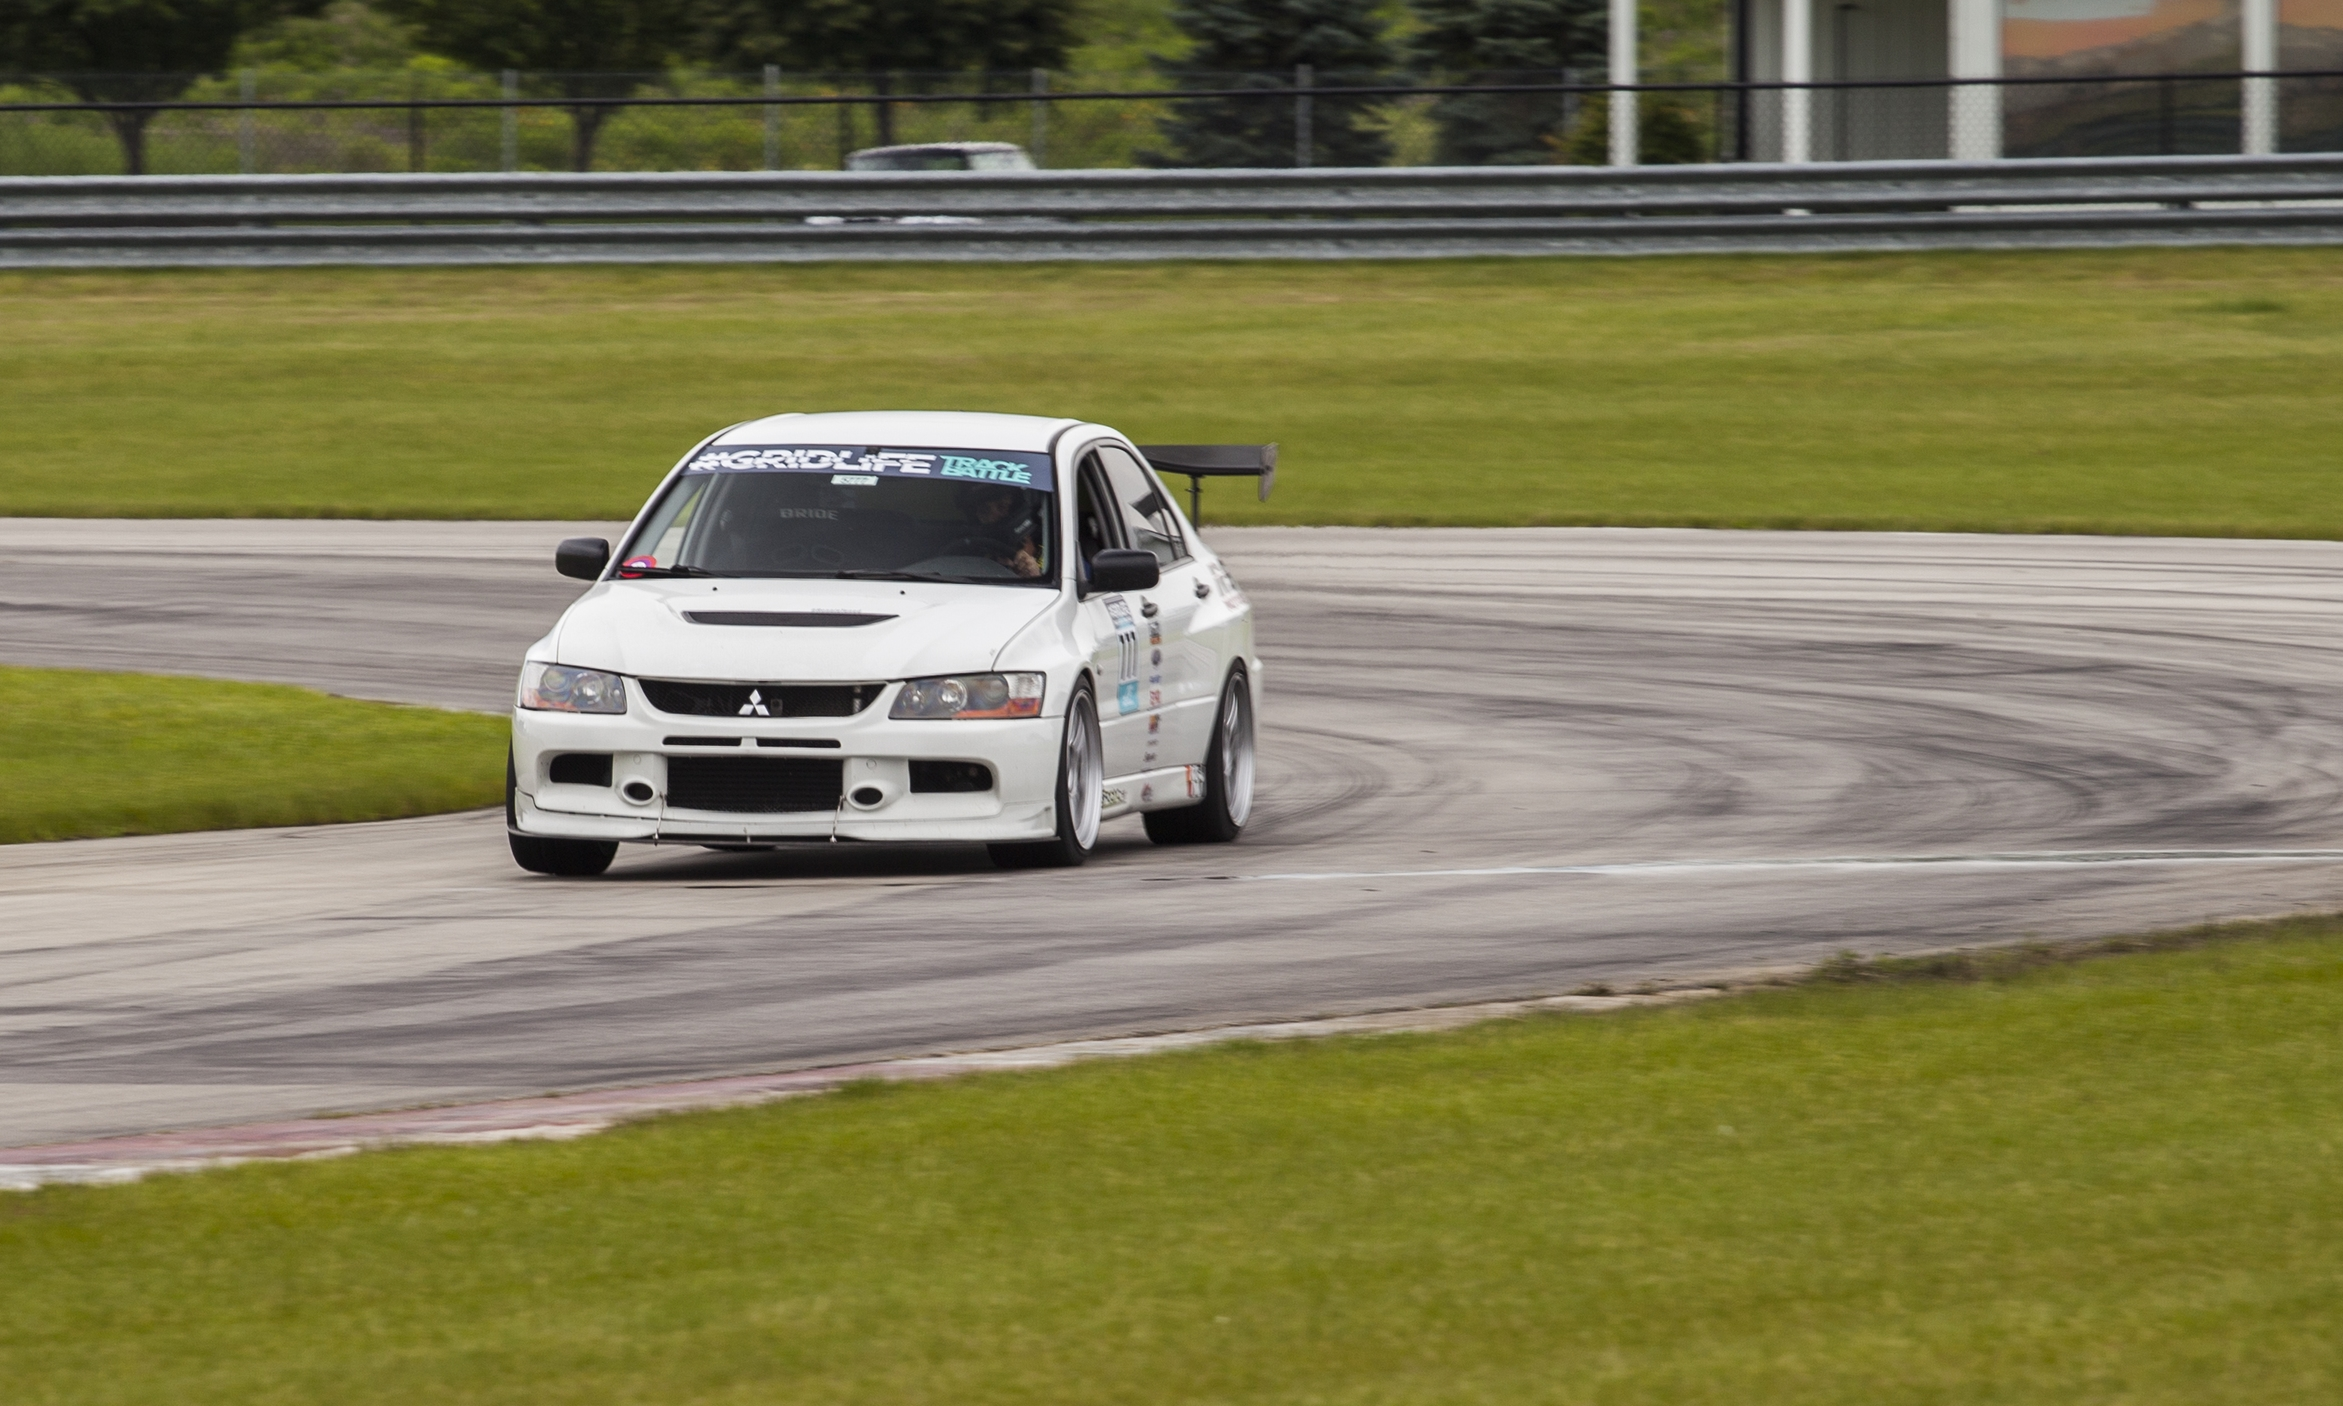 Another  RS Motors  /  365 Racing  driver Ronnie will be bringing his EVO to compete again. After a successful campaign in Track Mod last season you will see this tastefully modded EVO in Street Class. This is also the same car that took 2nd place overall in this season's Lap of America.